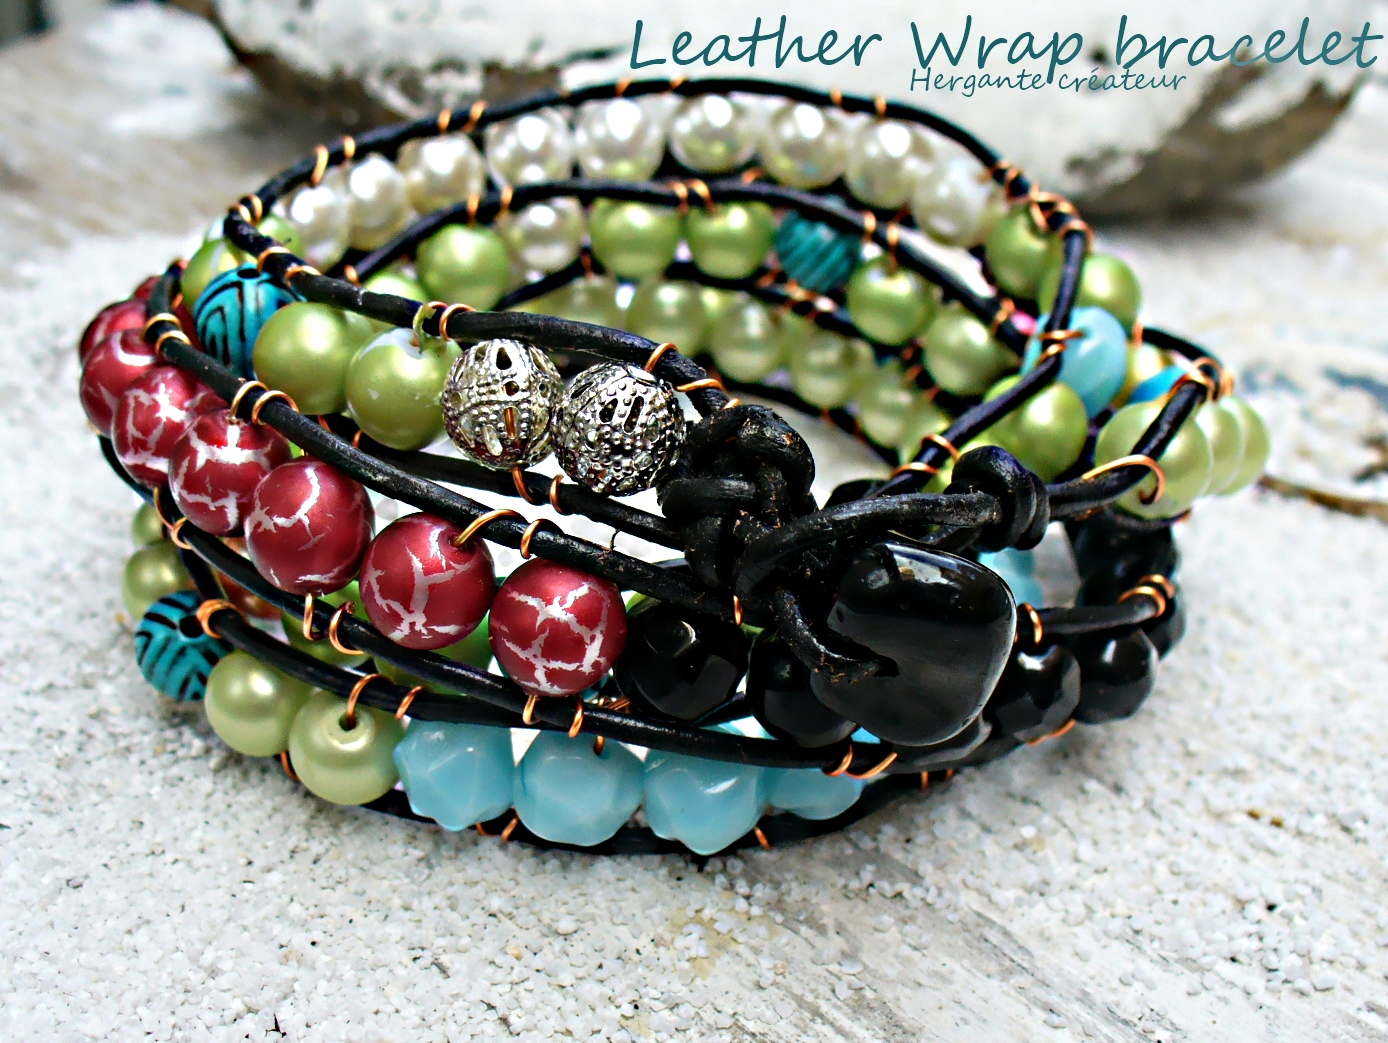 leather wrap bracelet hergante createur Girls Bracelet